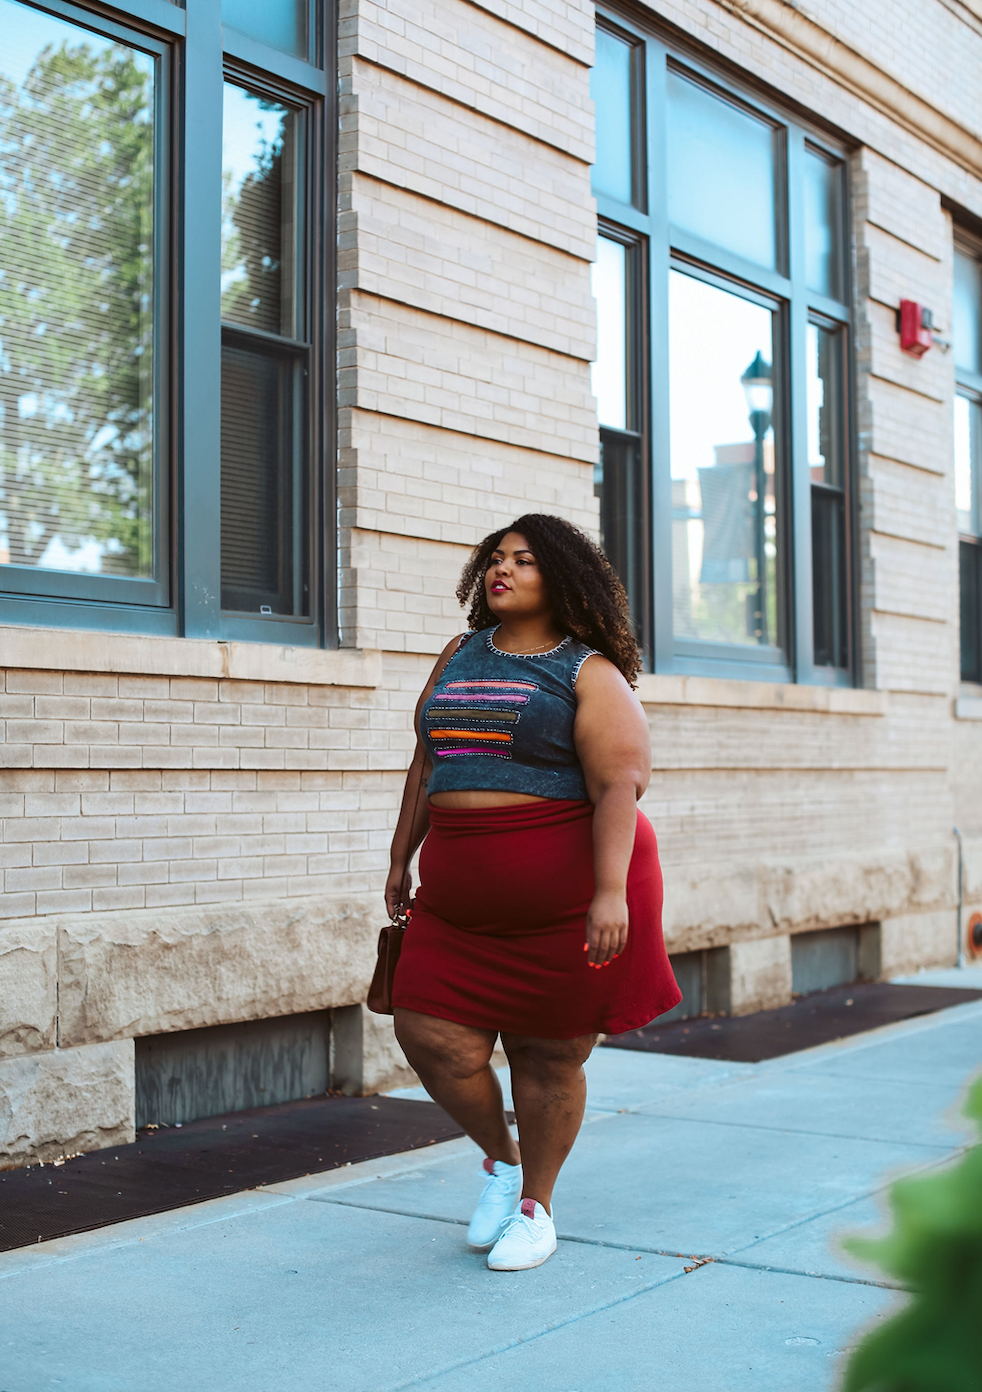 Our latest fall outfit obsession is a classic pairing that's both casual & chic —sneakers & skirts. Surely they go together like macaroni & cheese, #amiright?